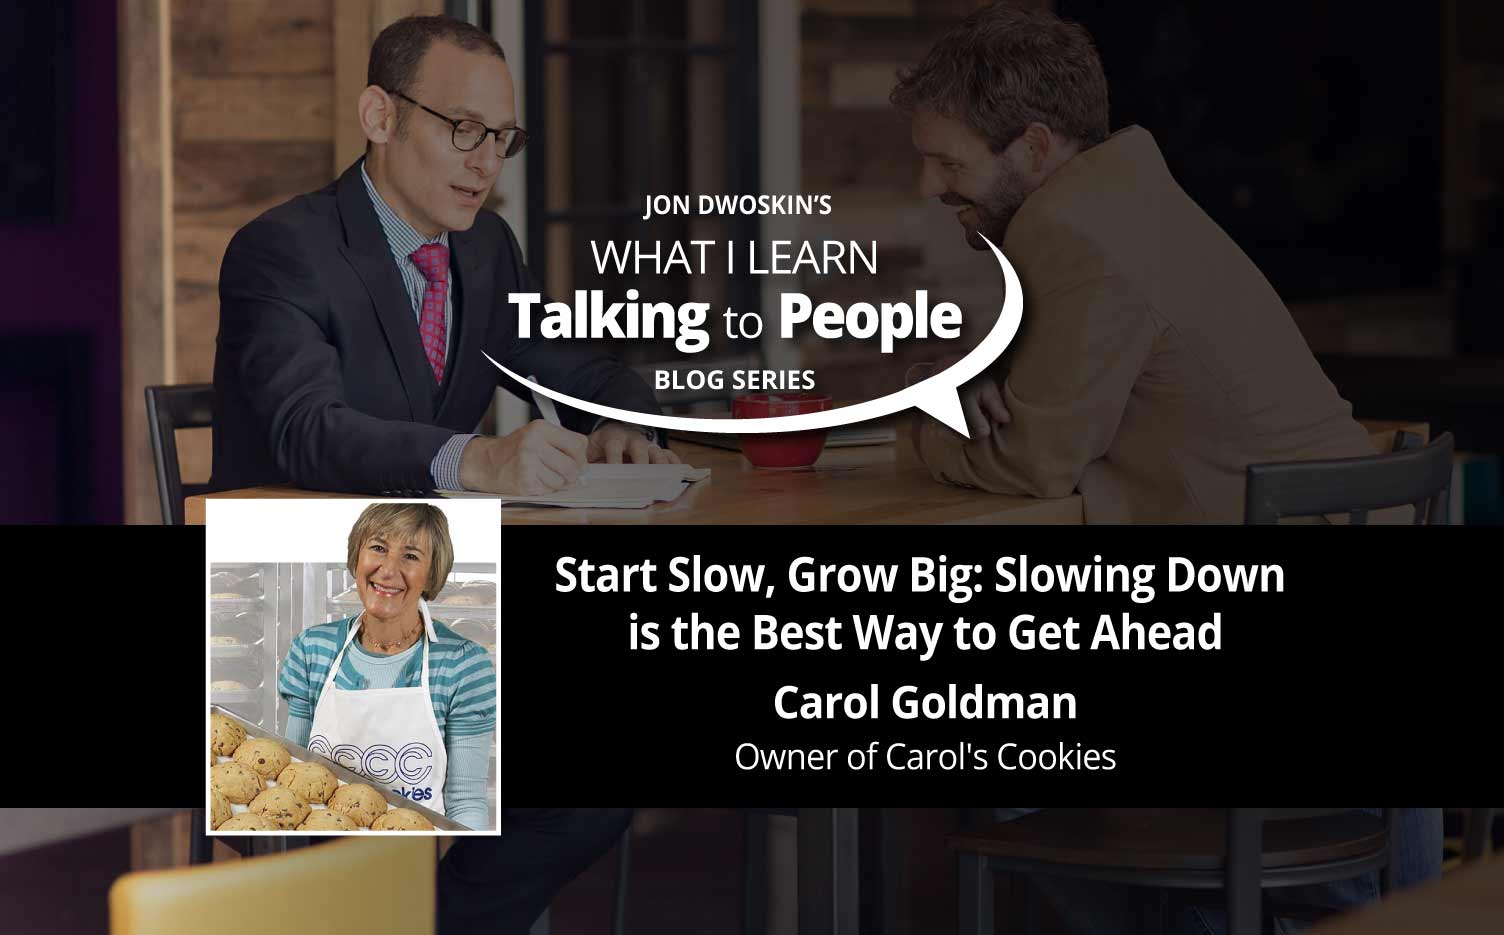 Jon Dwoskin Business Blog:  What I Learn Talking to People Blog: Start Slow, Grow Big: Slowing Down is the Best Way to Get Ahead - Carol Goldman